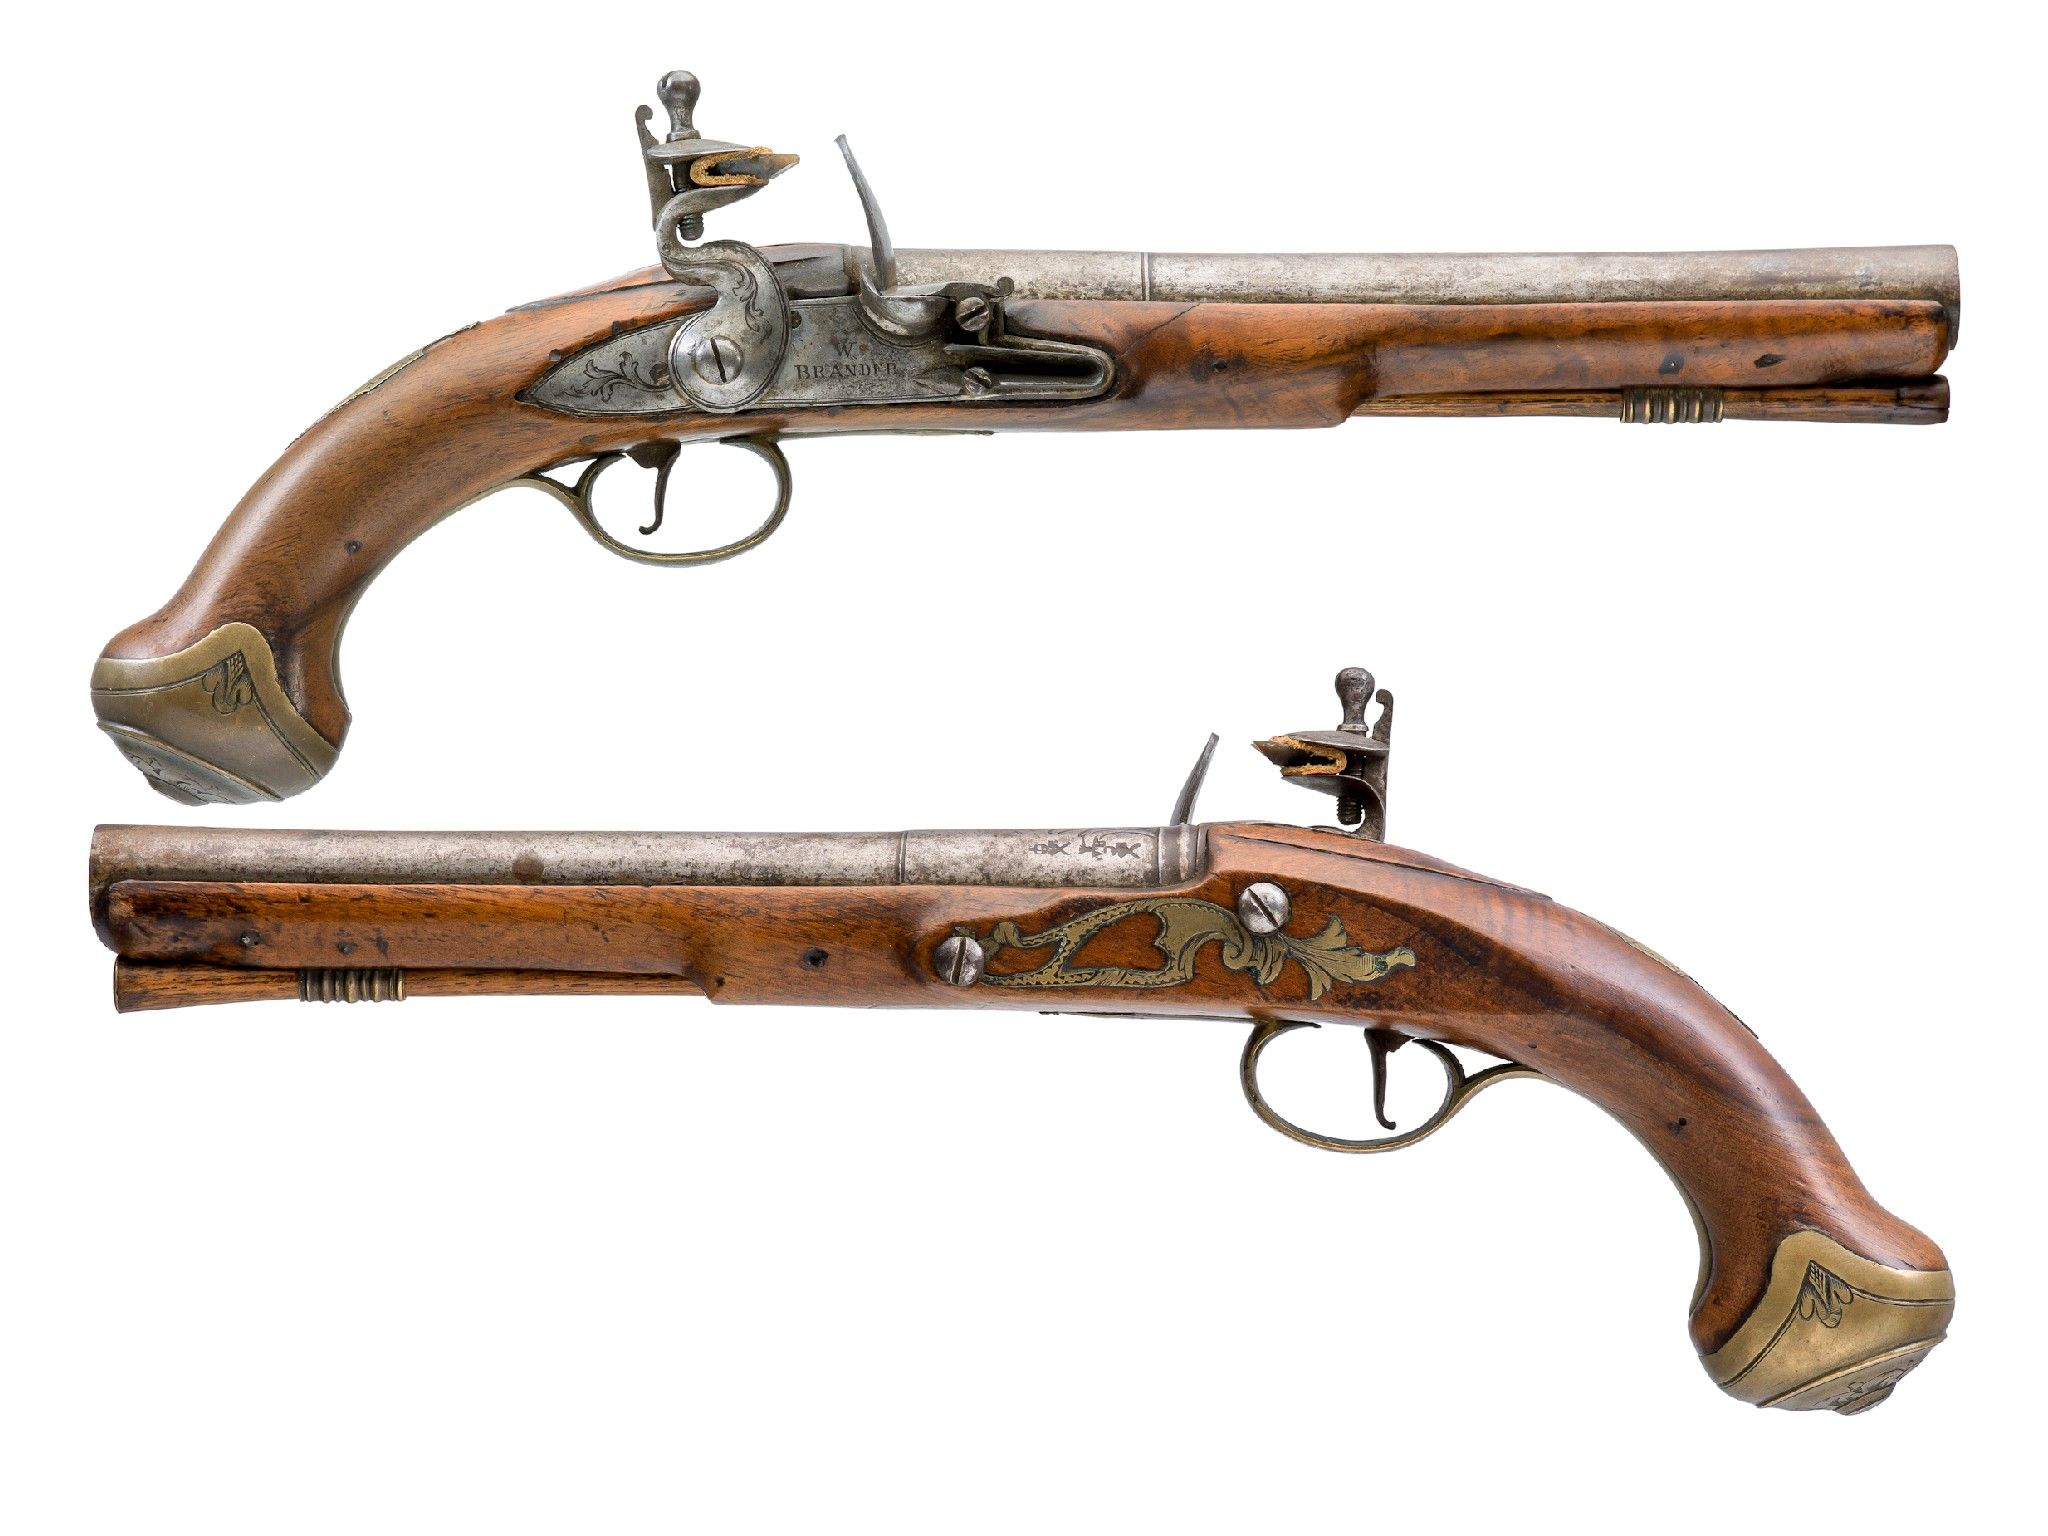 A PAIR OF 20 BORE FLINTLOCK PISTOLS OF LIVERY TYPE BY